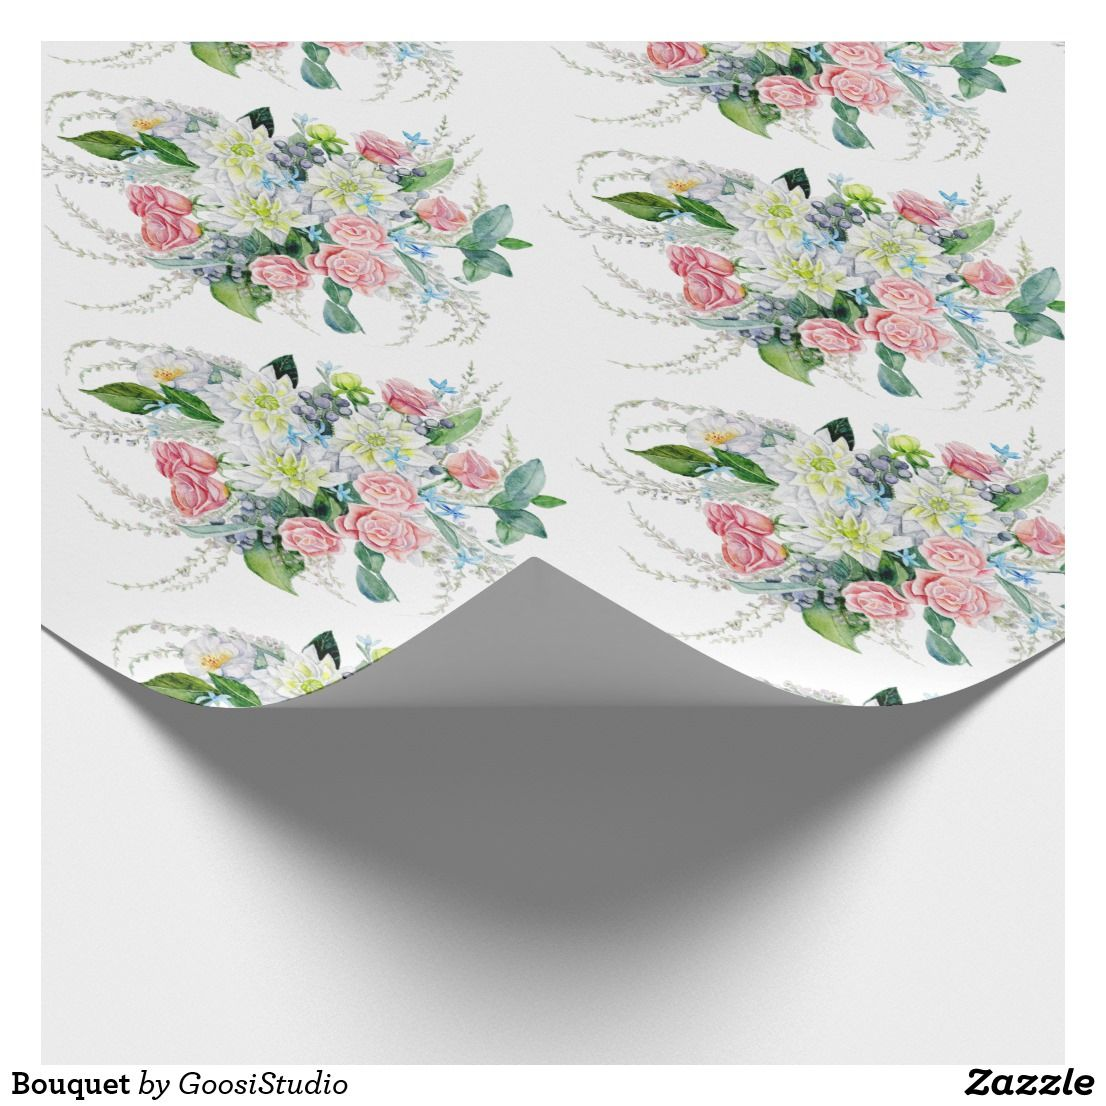 Bouquet wrapping paper with images